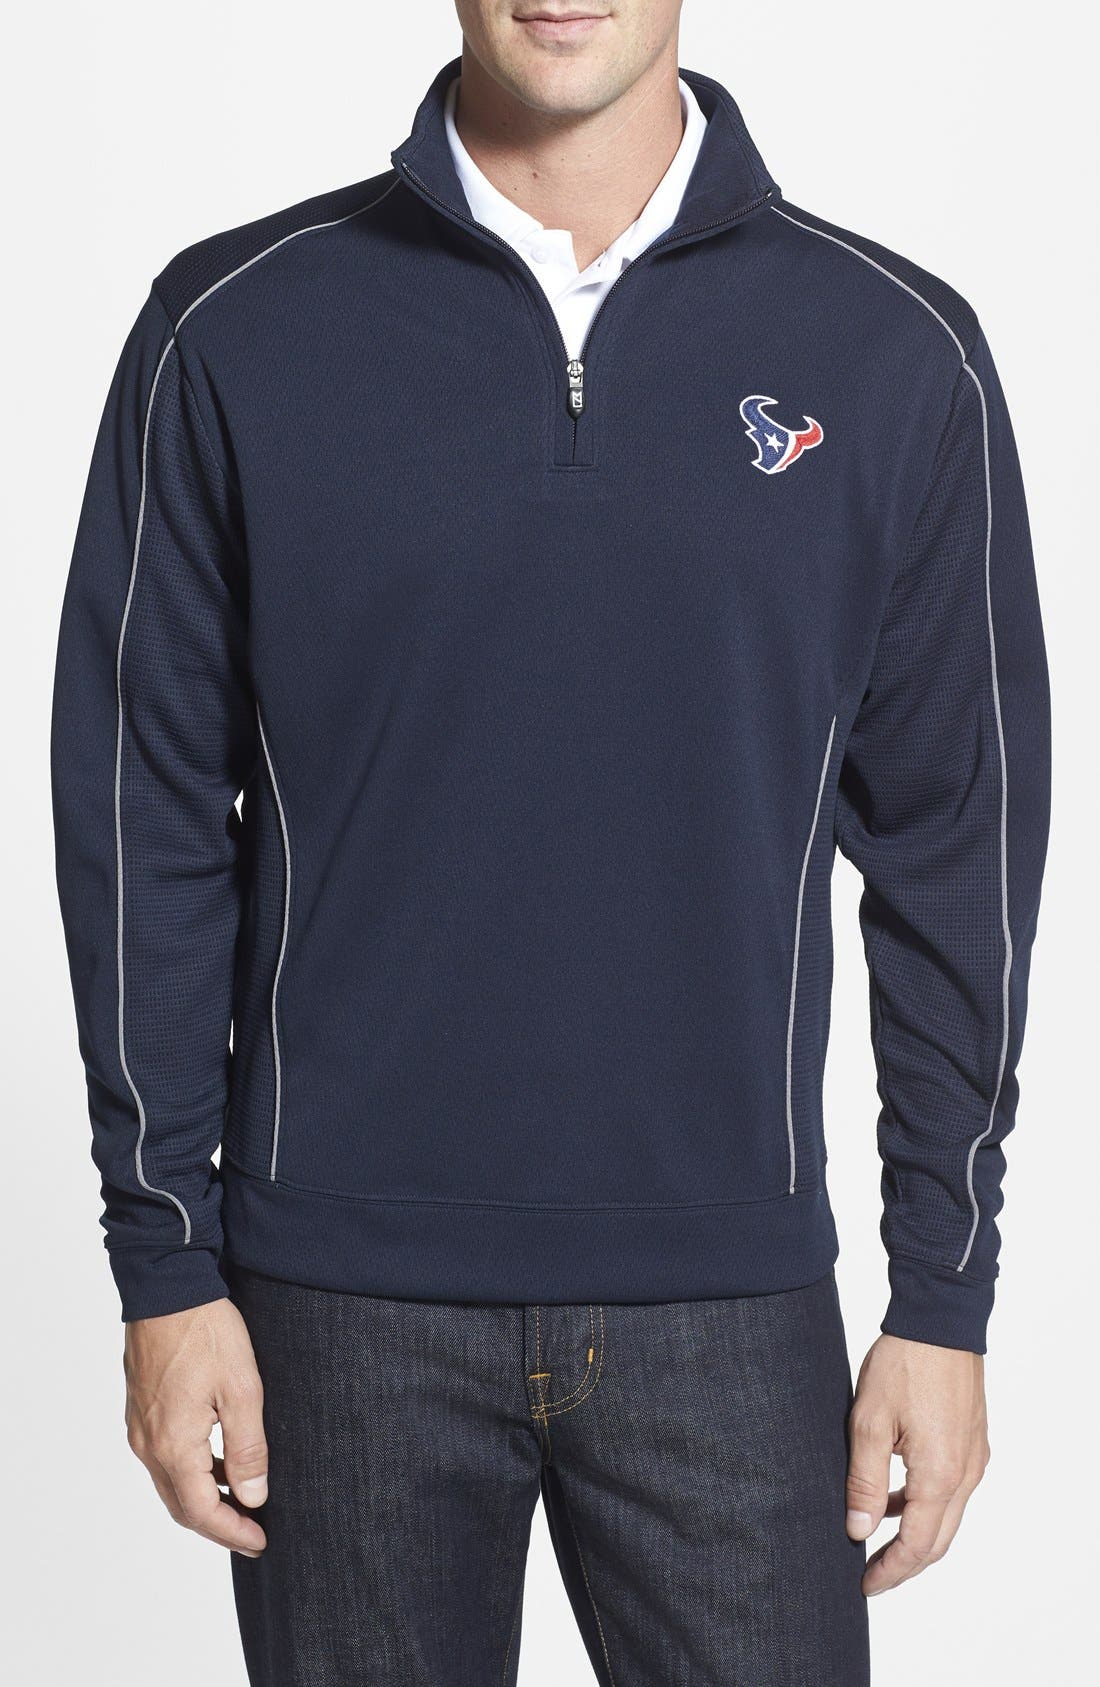 Cutter & Buck 'Houston Texans - Edge' DryTec Moisture Wicking Half Zip Pullover (Big & Tall)